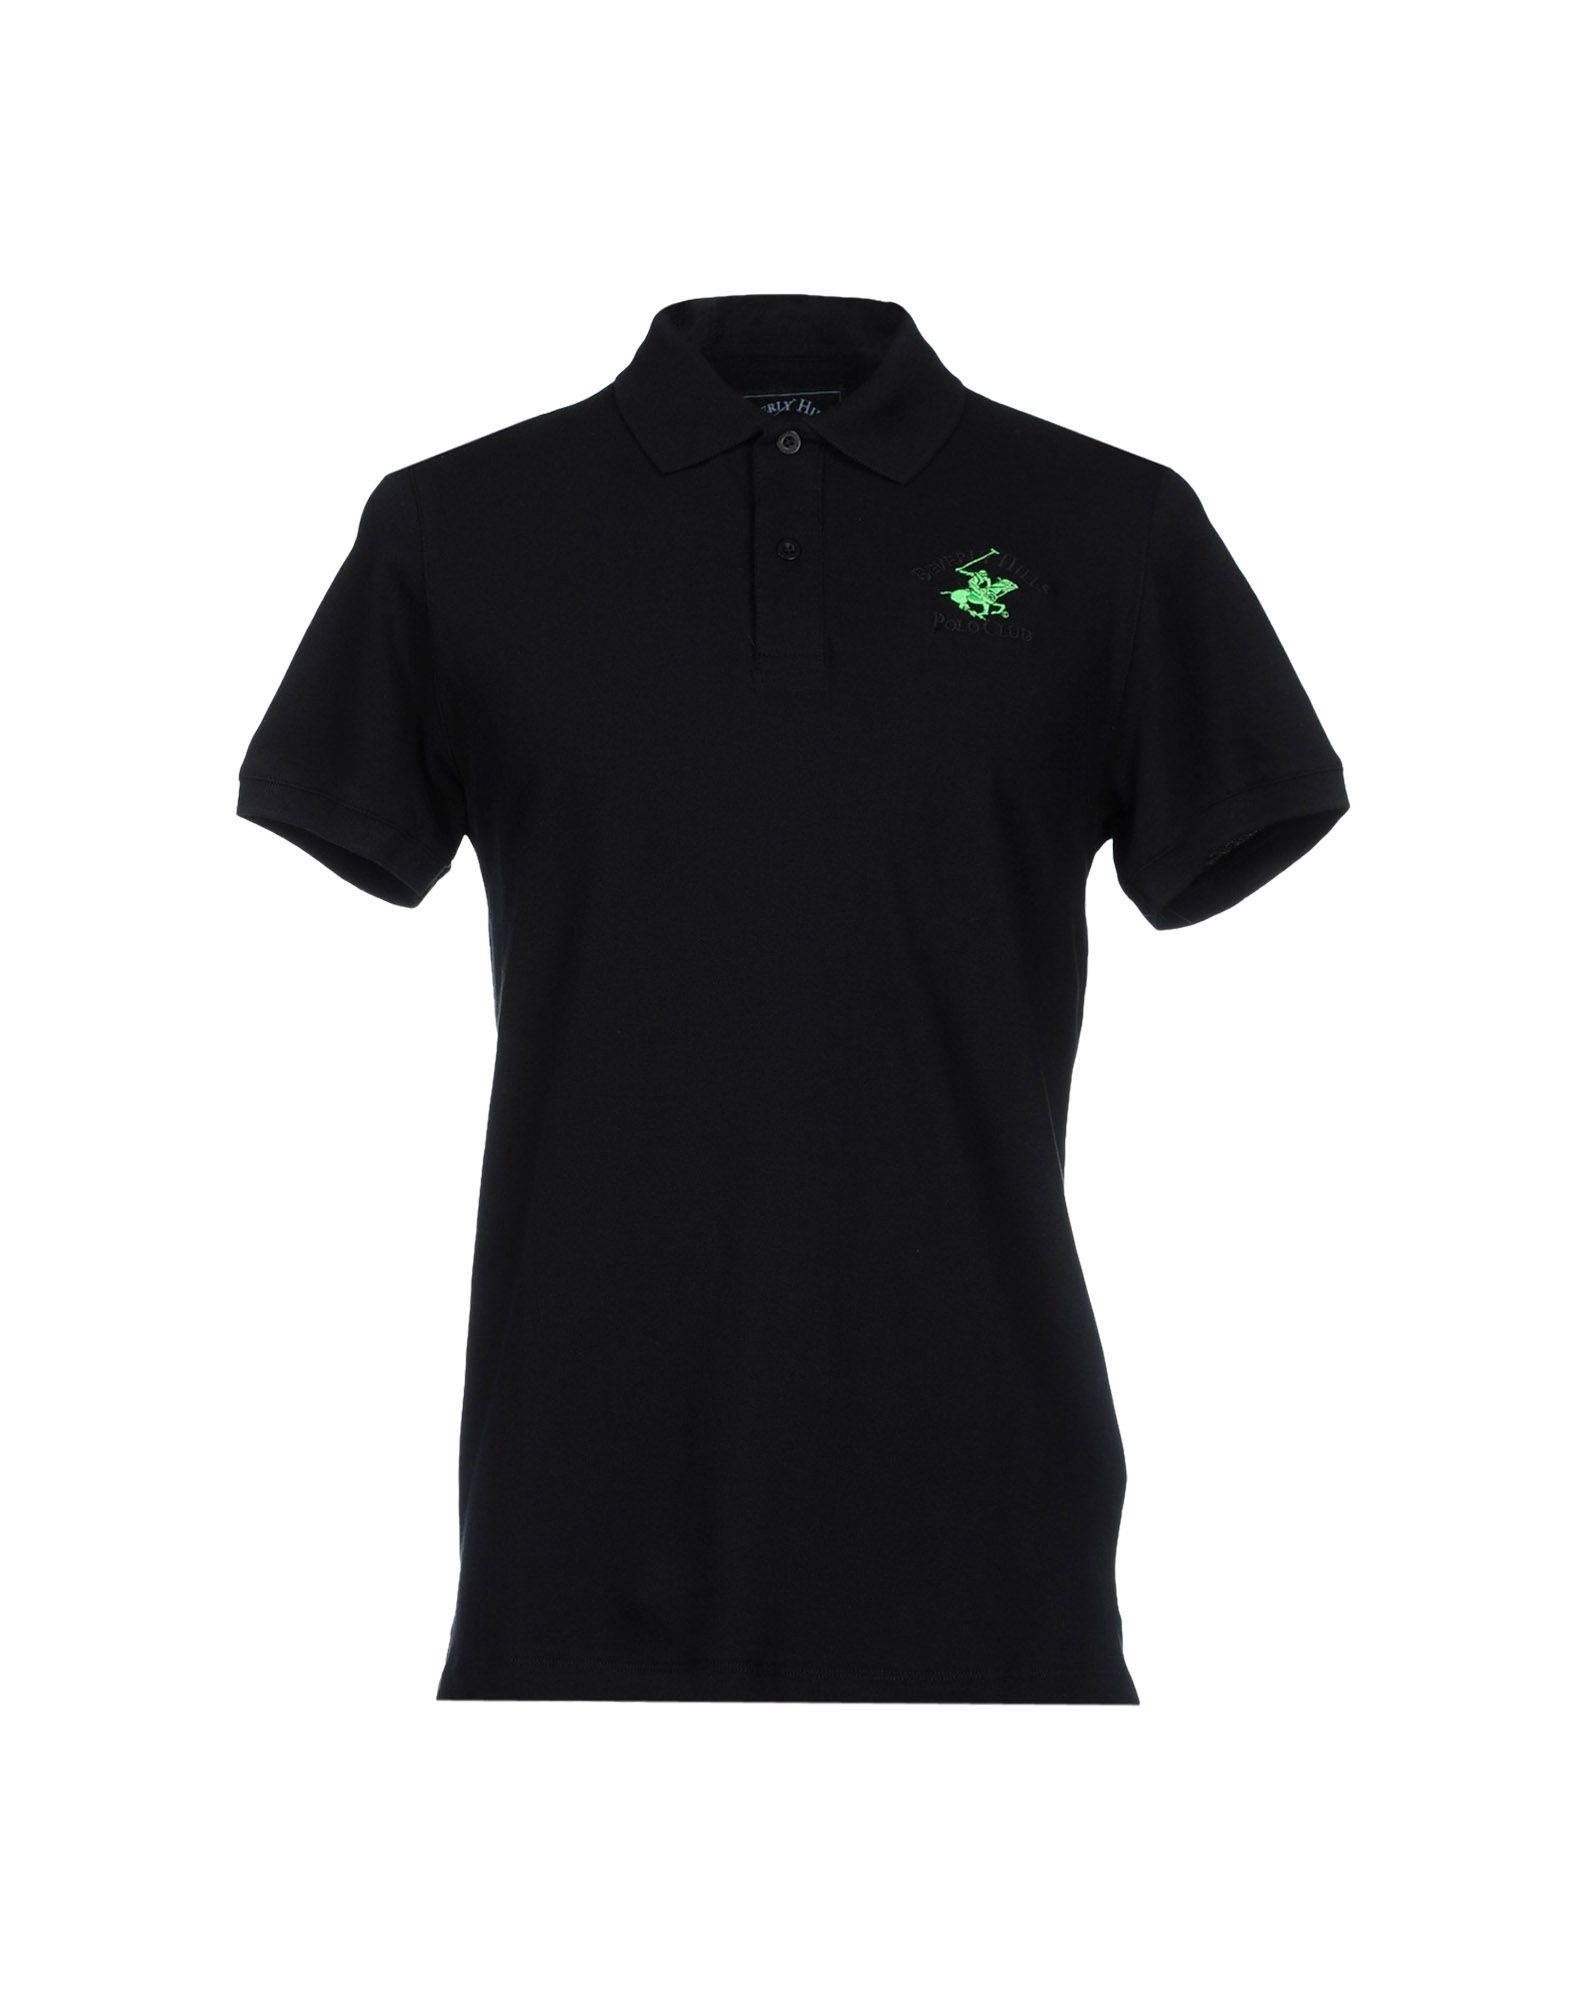 Beverly Hills Polo Club Polo Shirt In Black For Men Lyst